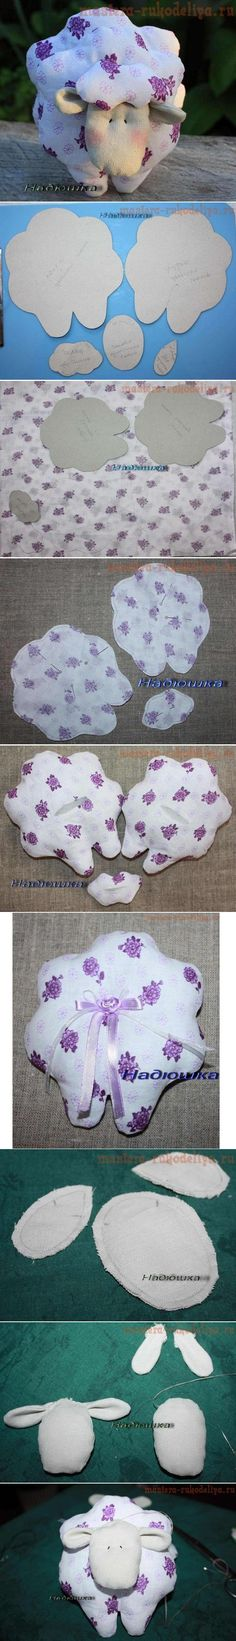 DIY Fabric Sheep Toy...use fuzzy material...